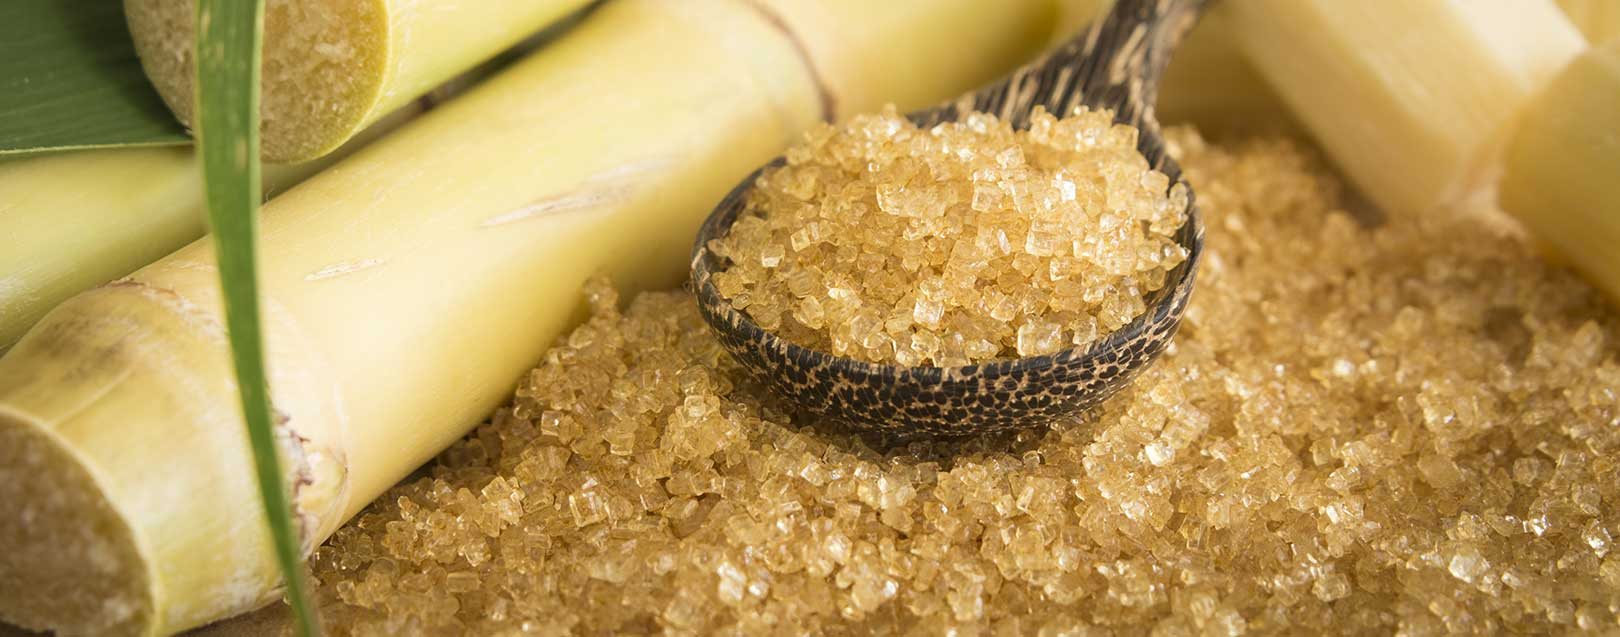 Sugar price rise 'inevitable' due to sugarcane FRP hike: NFCSF